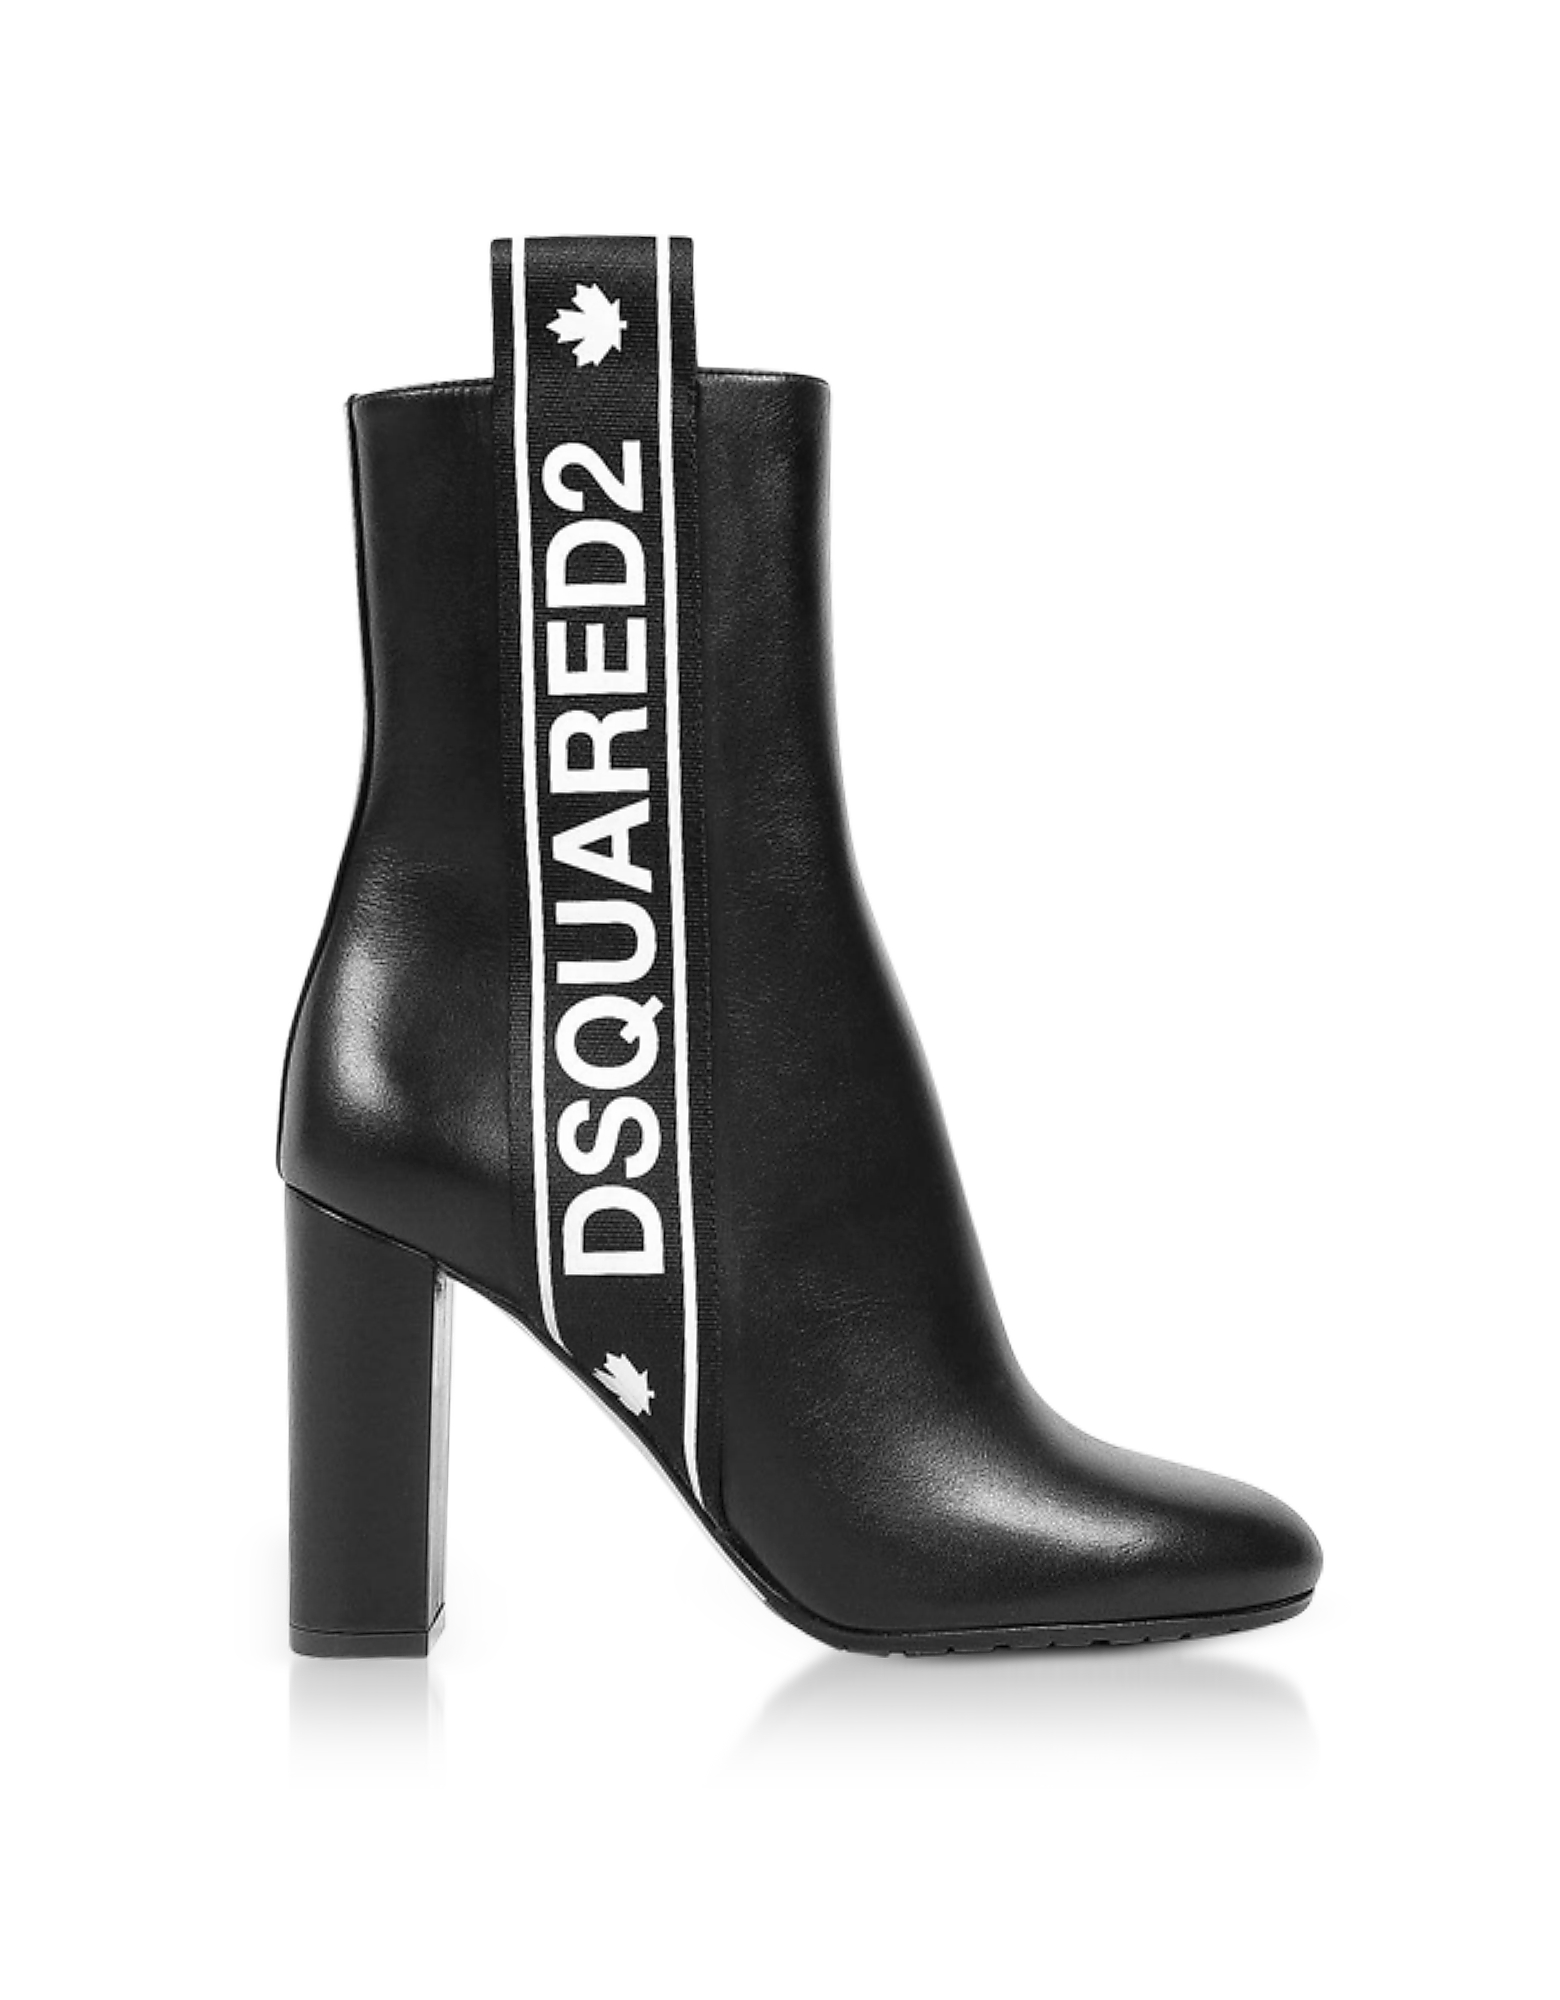 DSquared2 Shoes, Bronx Hip Hop Dsquared2 Tape Black Leather Heel Ankle Boots